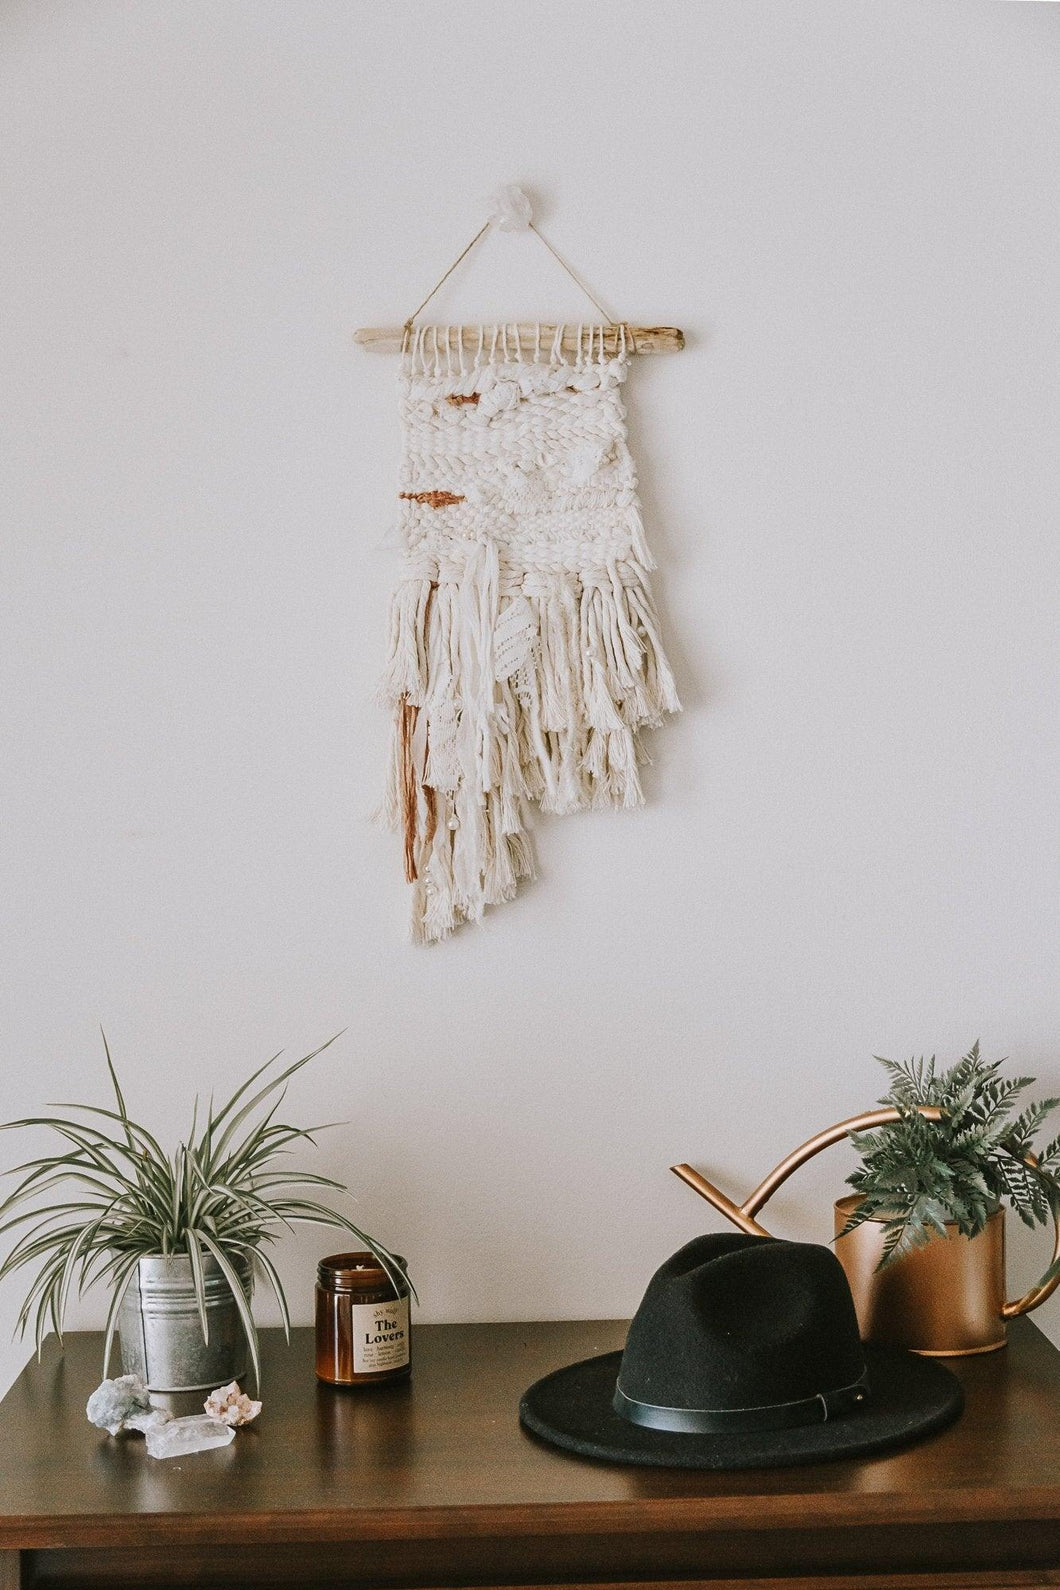 ICON – Like A Virgin x Hollywood | Woven Wall Hanging | Boho Inspired Decor - little oak + co.